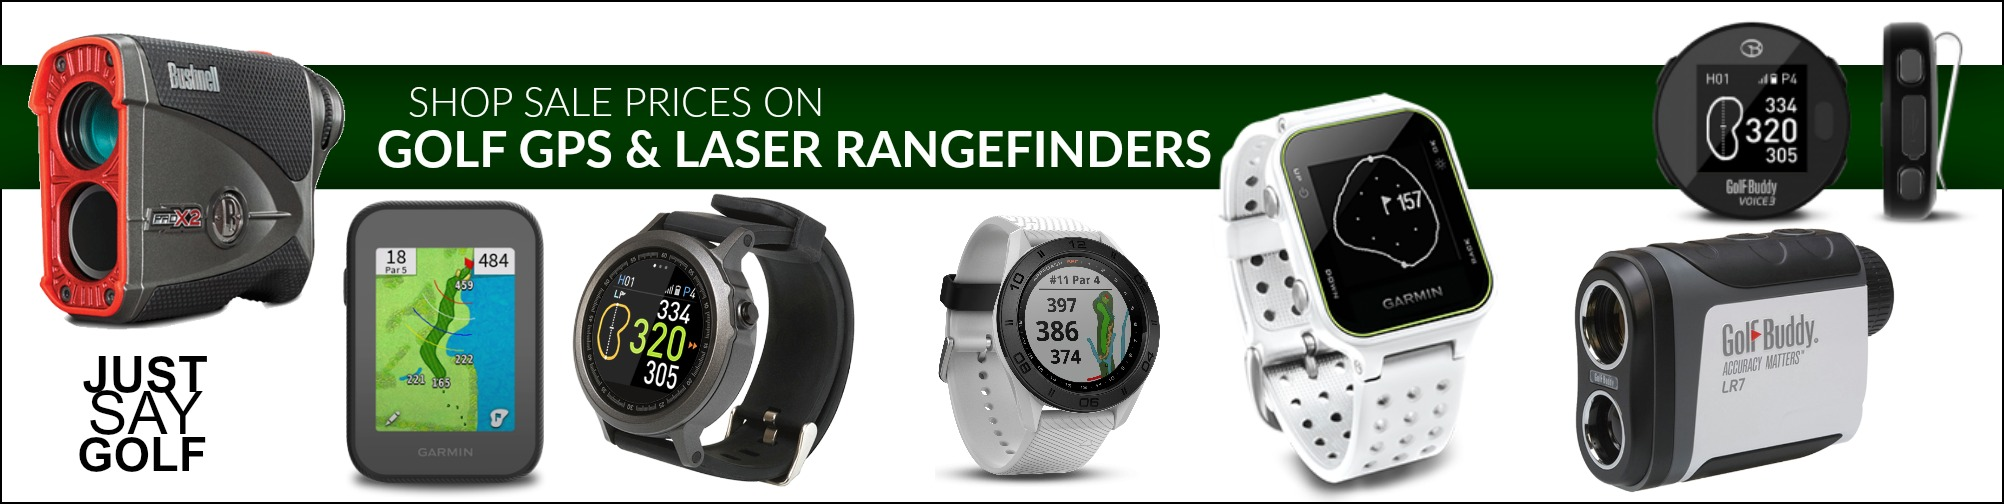 Golf GPS and Golf Rangefinders banner